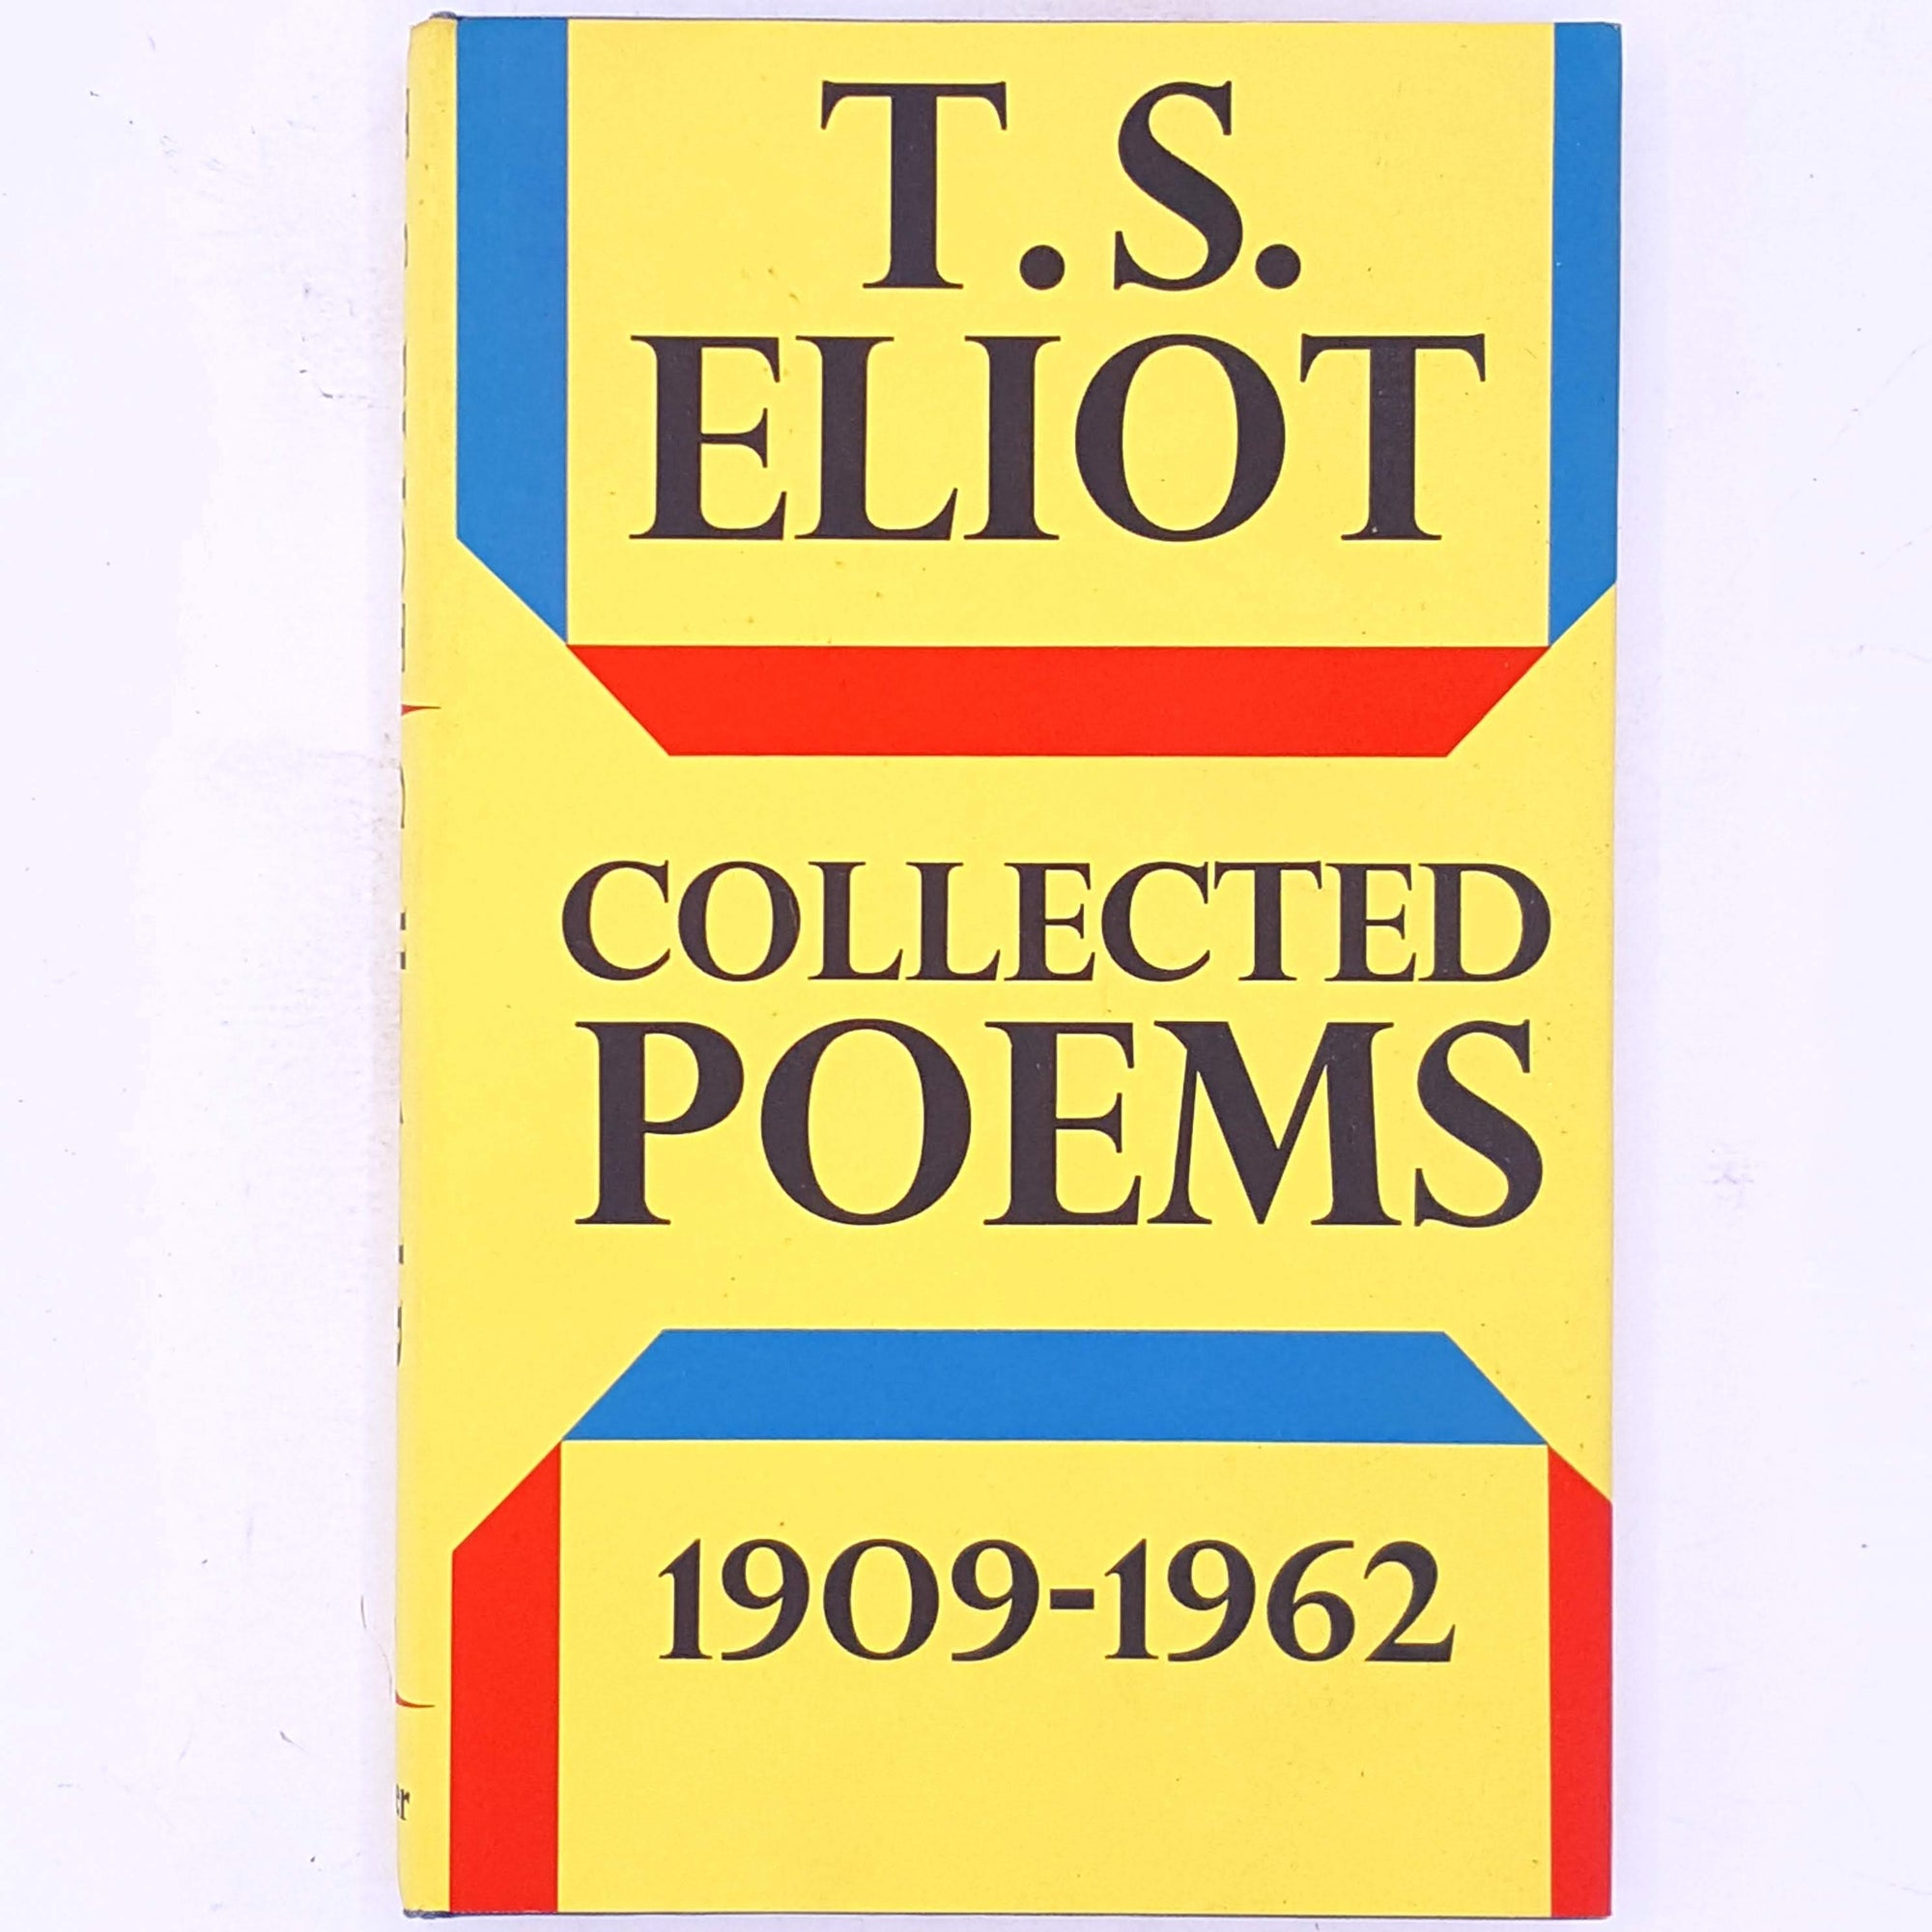 books-antique-vintage-decorative-patterned-country-house-library-t.s.-eliot-faber-and-faber-poems-poetry-poet-writer-classic-collected-poems-1909-1962-old-thrift-